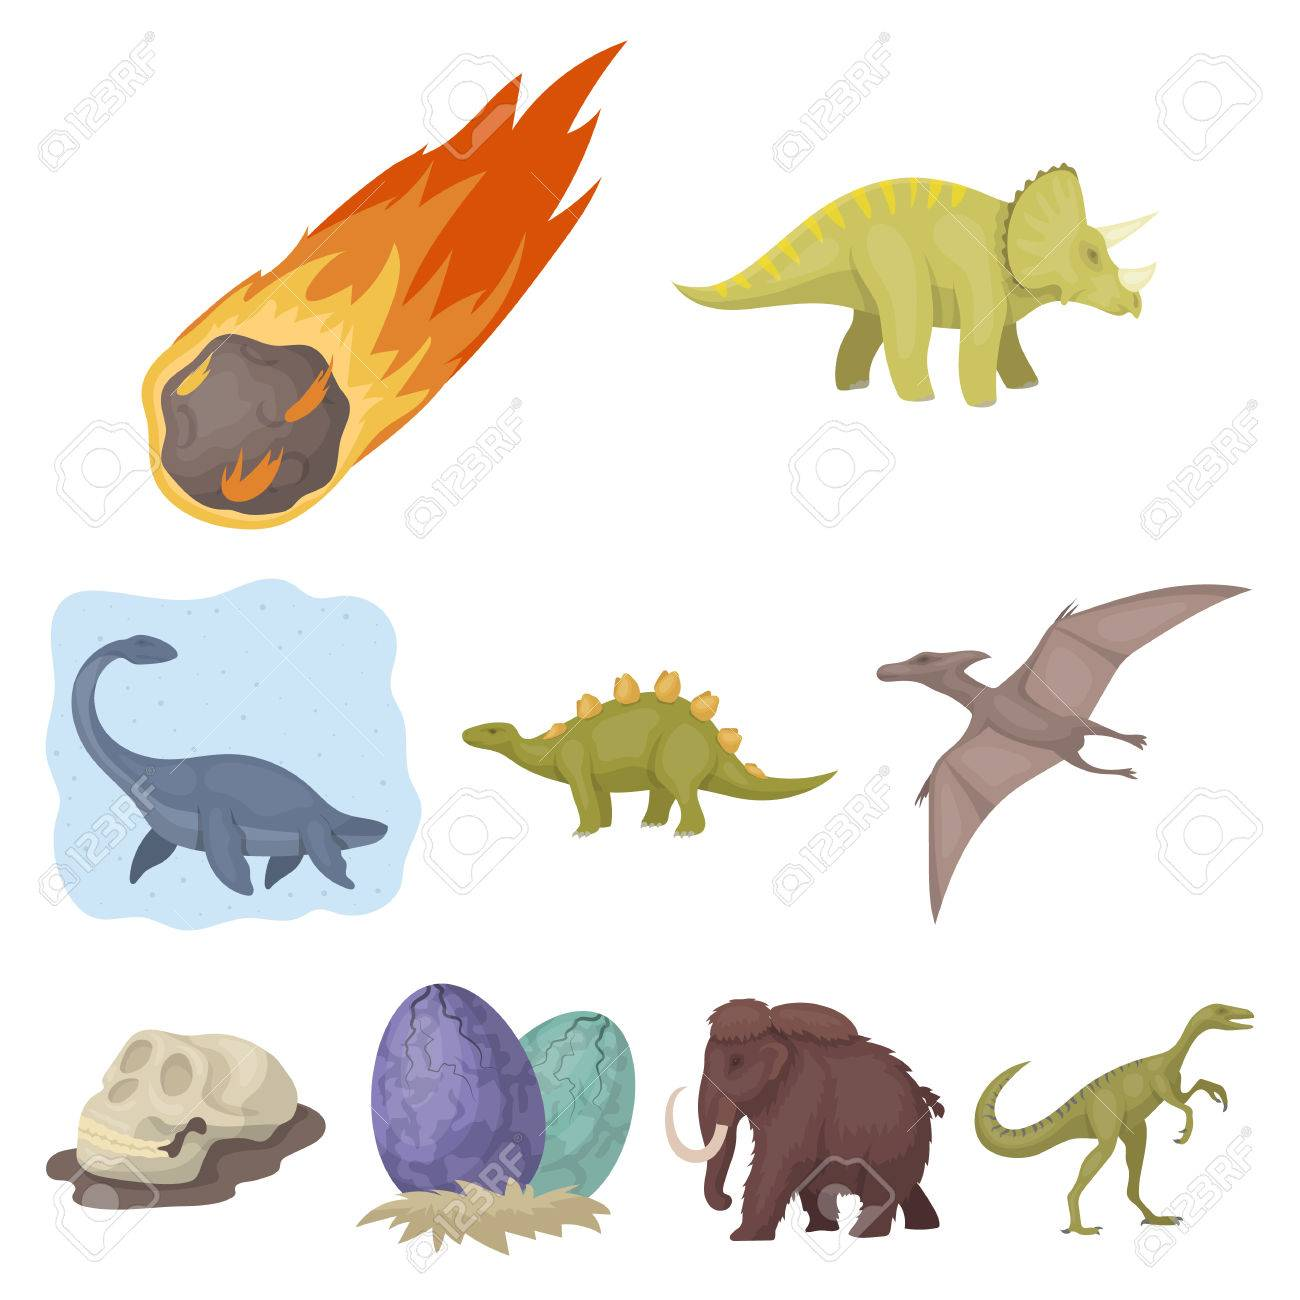 Image of: Vector Image Ancient Extinct Animals And Their Tracks And Remains Dinosaurs Tyrannosaurs Pnictosaursdinisaurs 123rfcom Ancient Extinct Animals And Their Tracks And Remains Dinosaurs